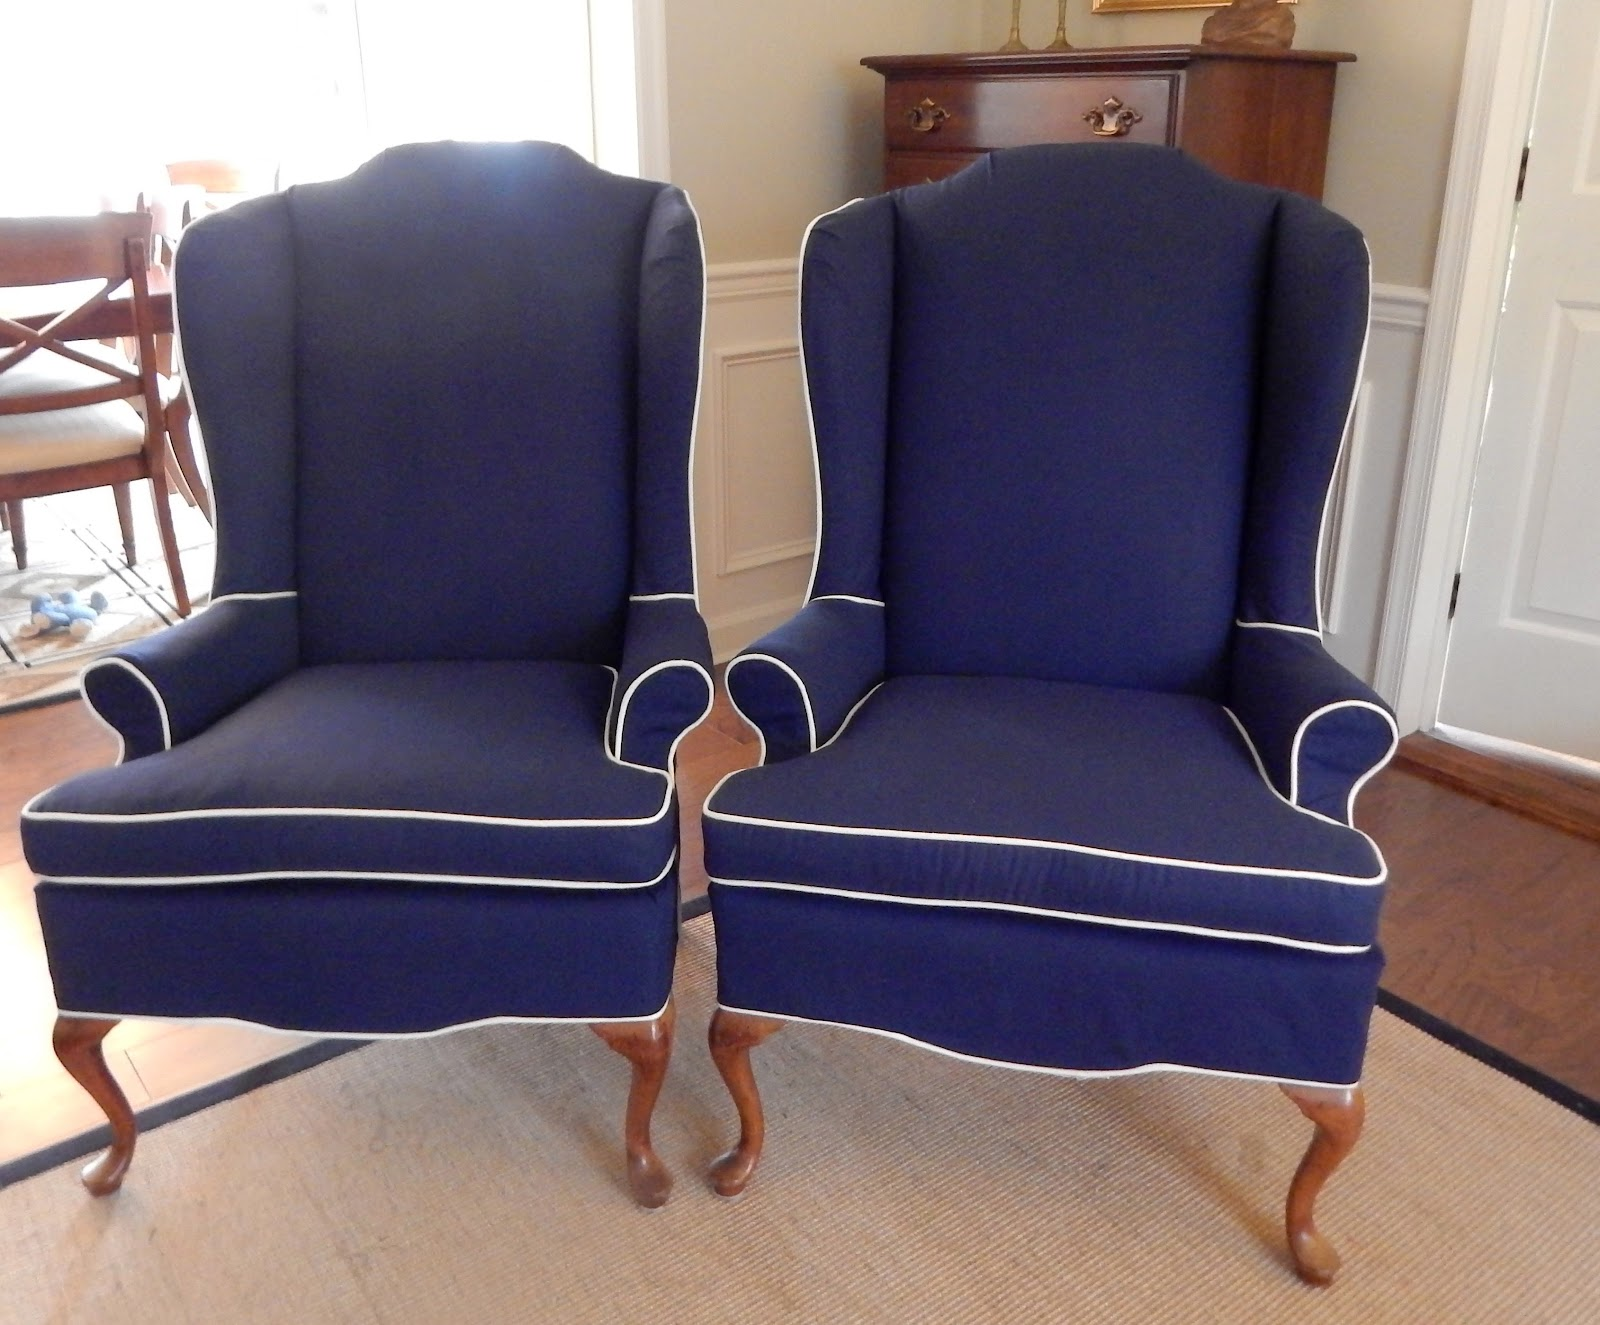 At Home Chairs Pam Morris Sews Navy Blue White Wing Chairs